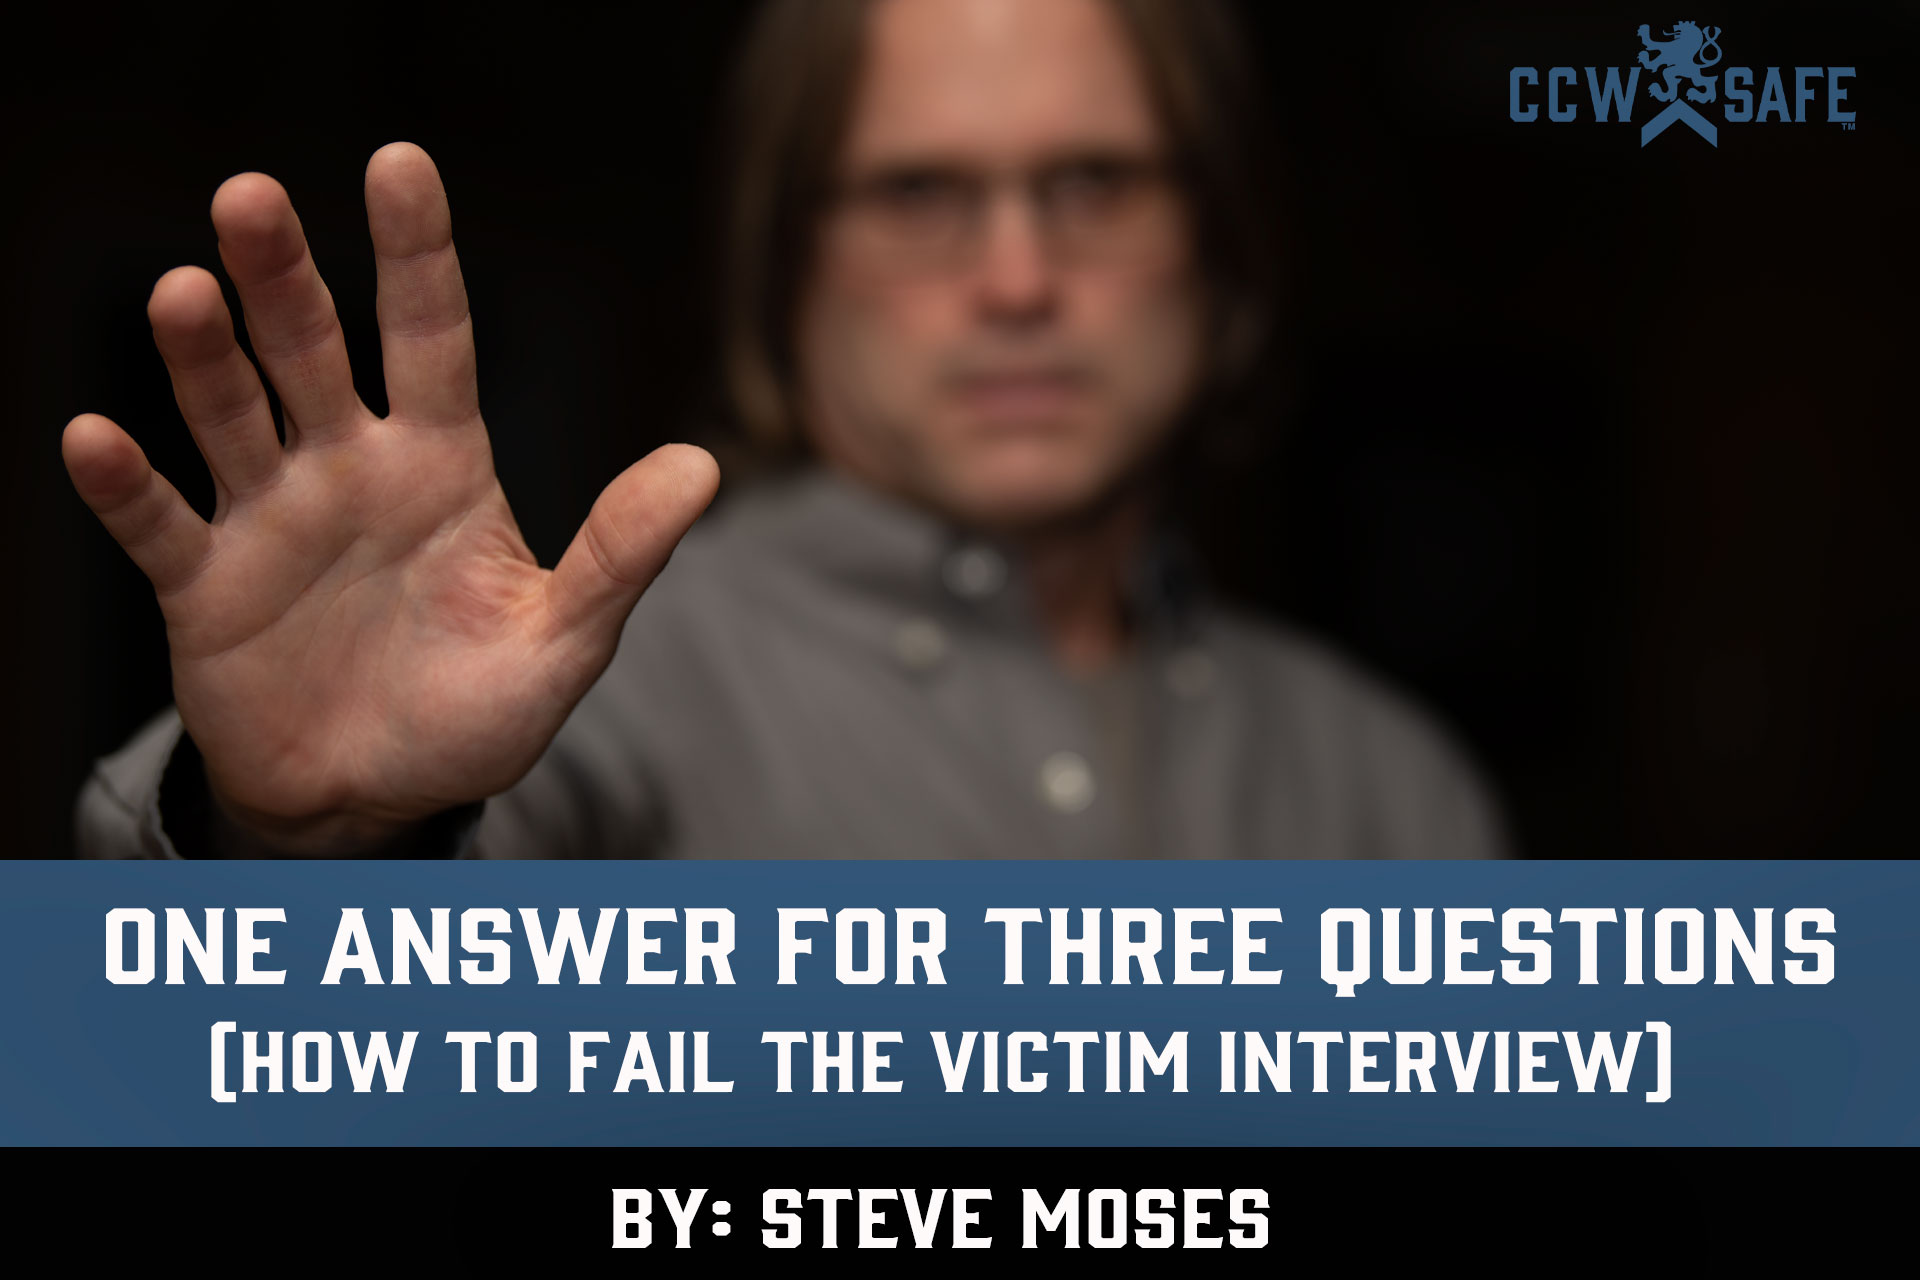 ONE ANSWER FOR THREE QUESTIONS (HOW TO FAIL THE VICTIM INTERVIEW)